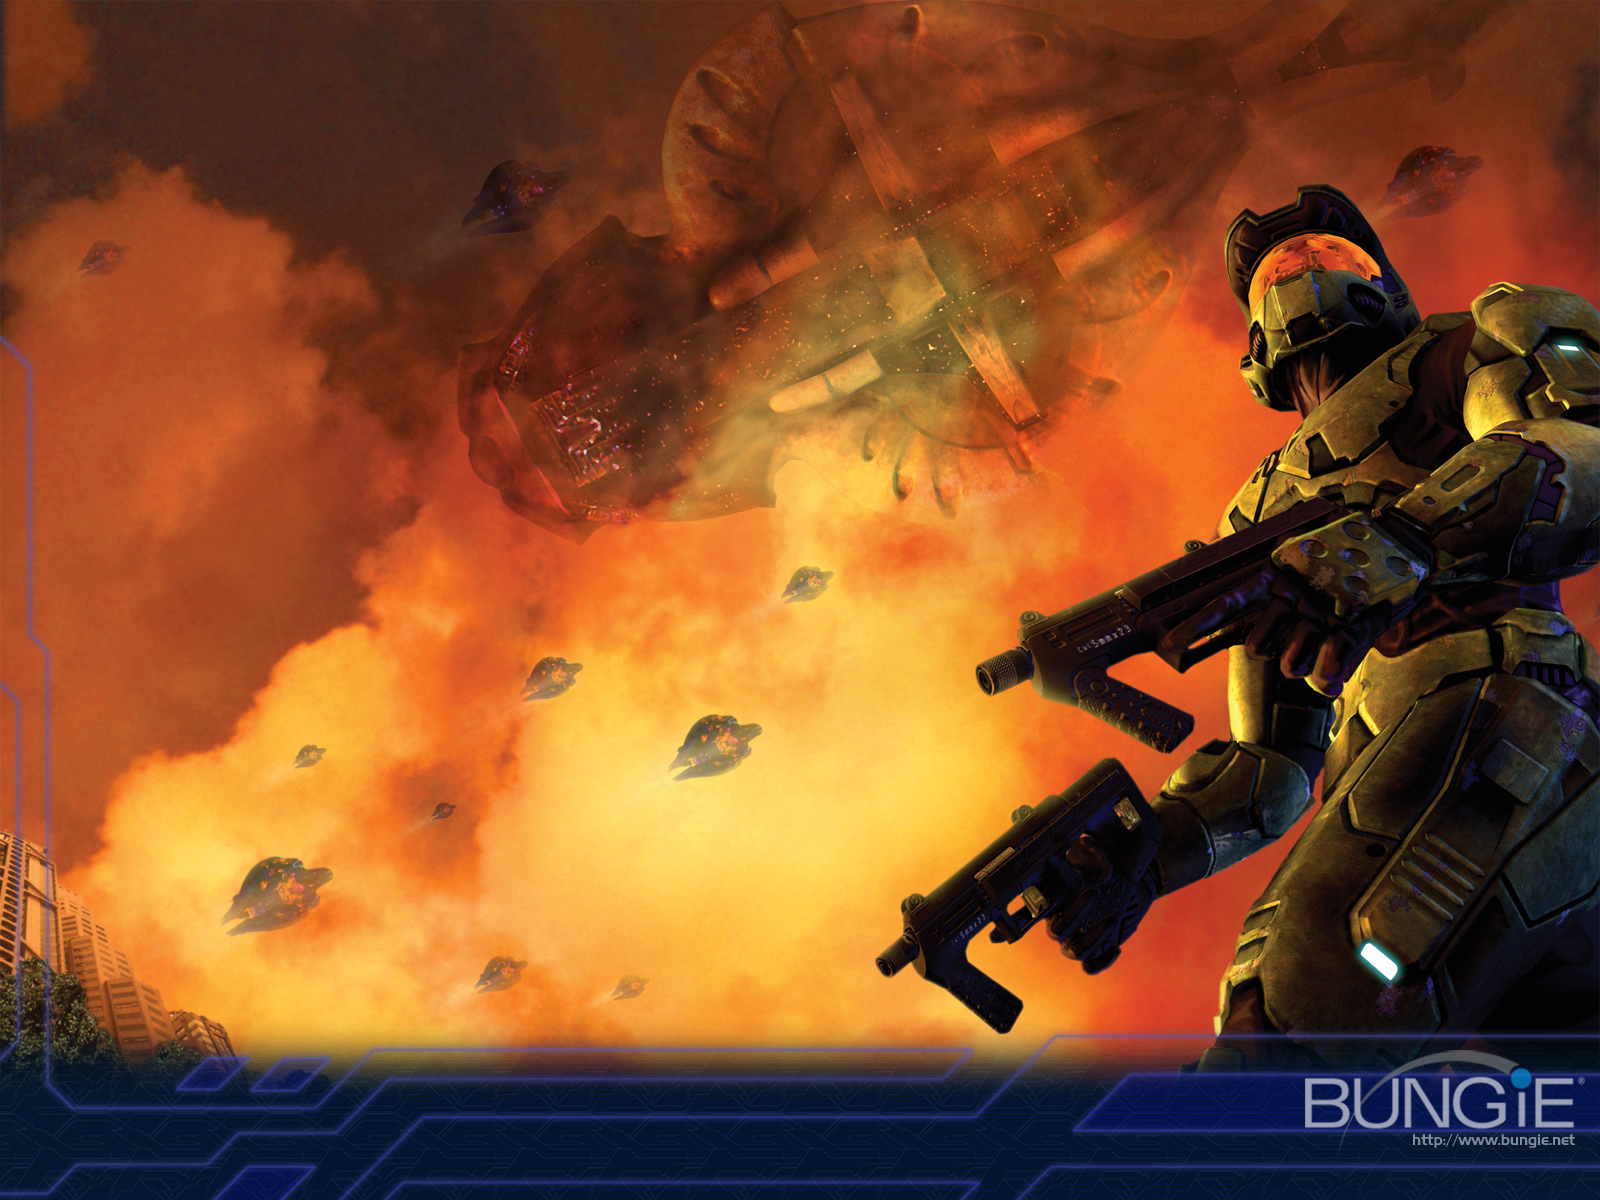 Halo 2 wallpaper